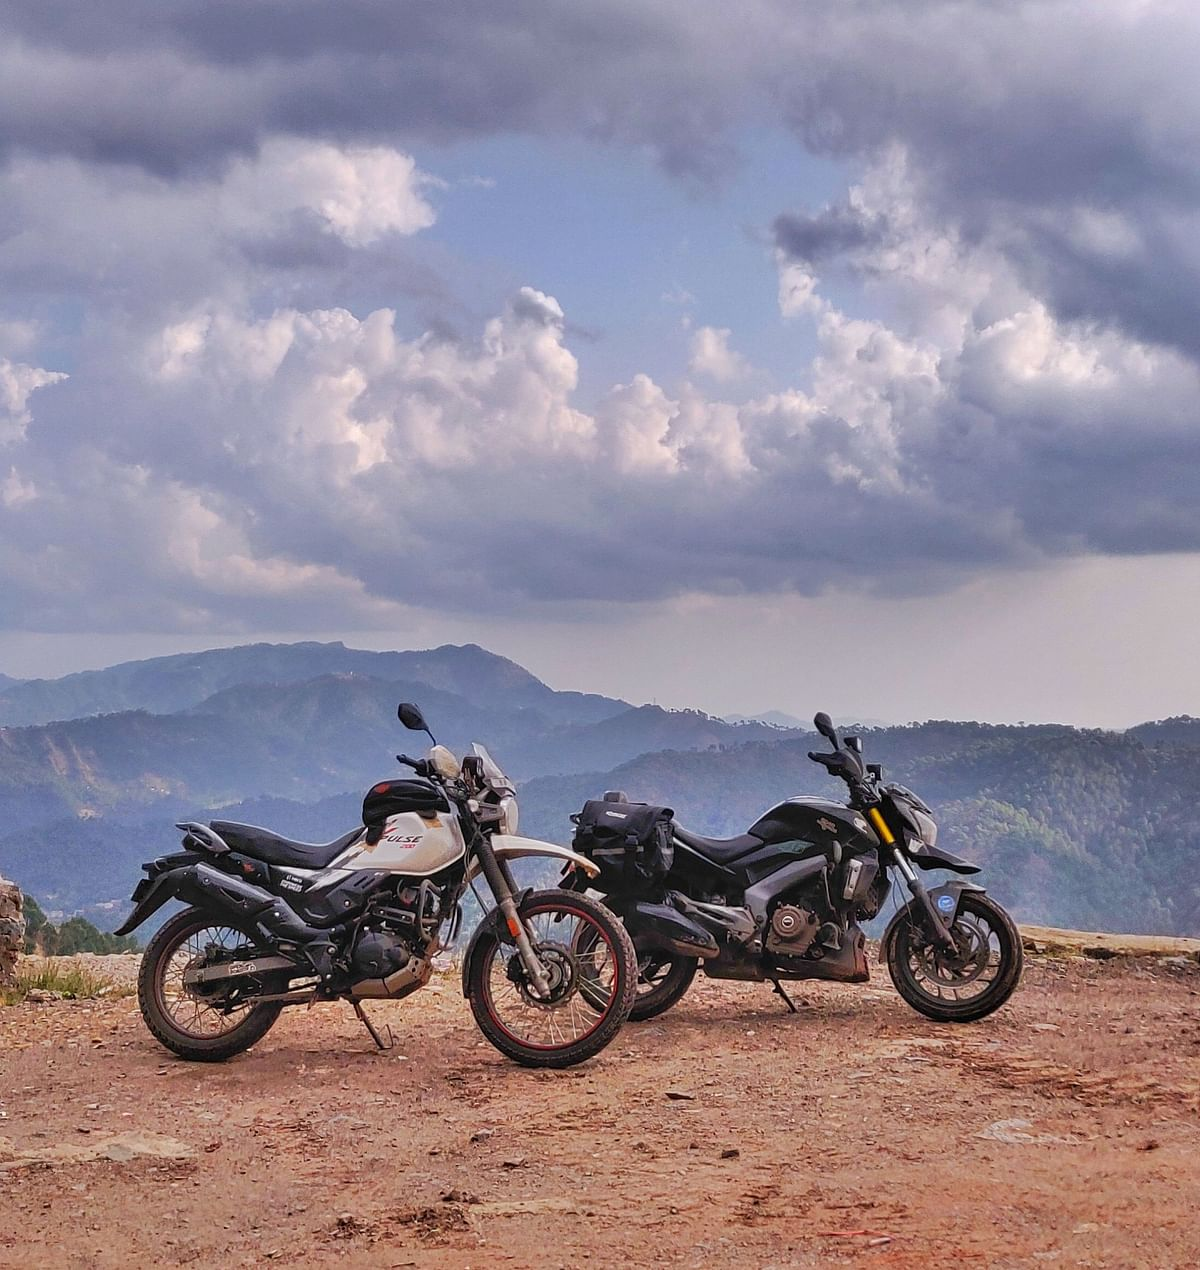 Taking on the Himalayas with a Dominar 400 and XPulse 200